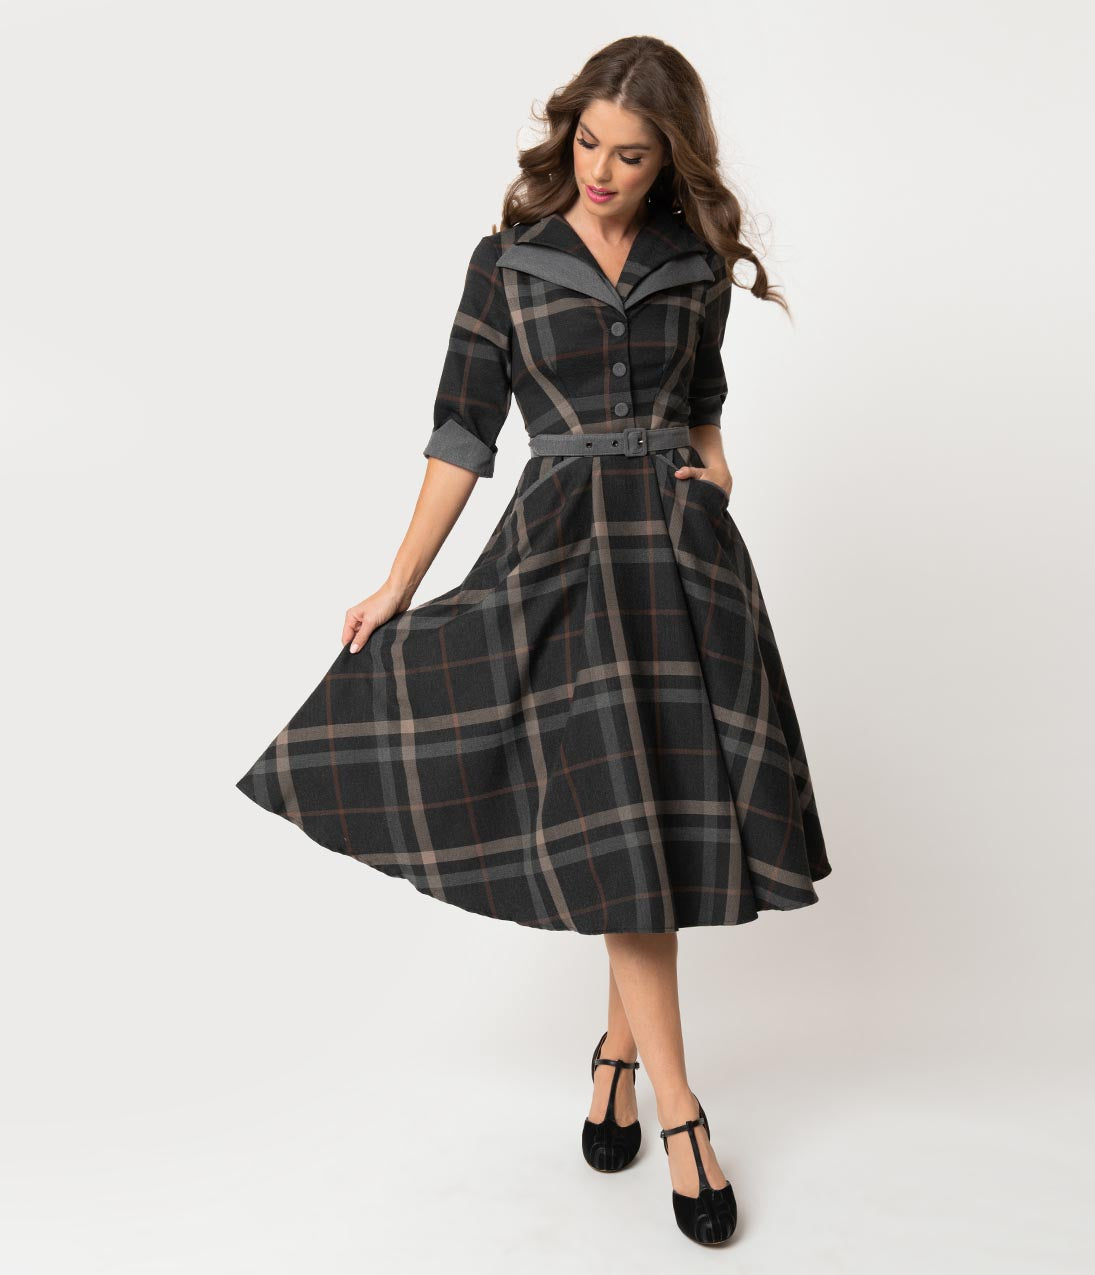 1950s Dresses, 50s Dresses | 1950s Style Dresses Miss Candyfloss 1940S Grey Tartan Sleeved Nour Swing Dress $138.00 AT vintagedancer.com